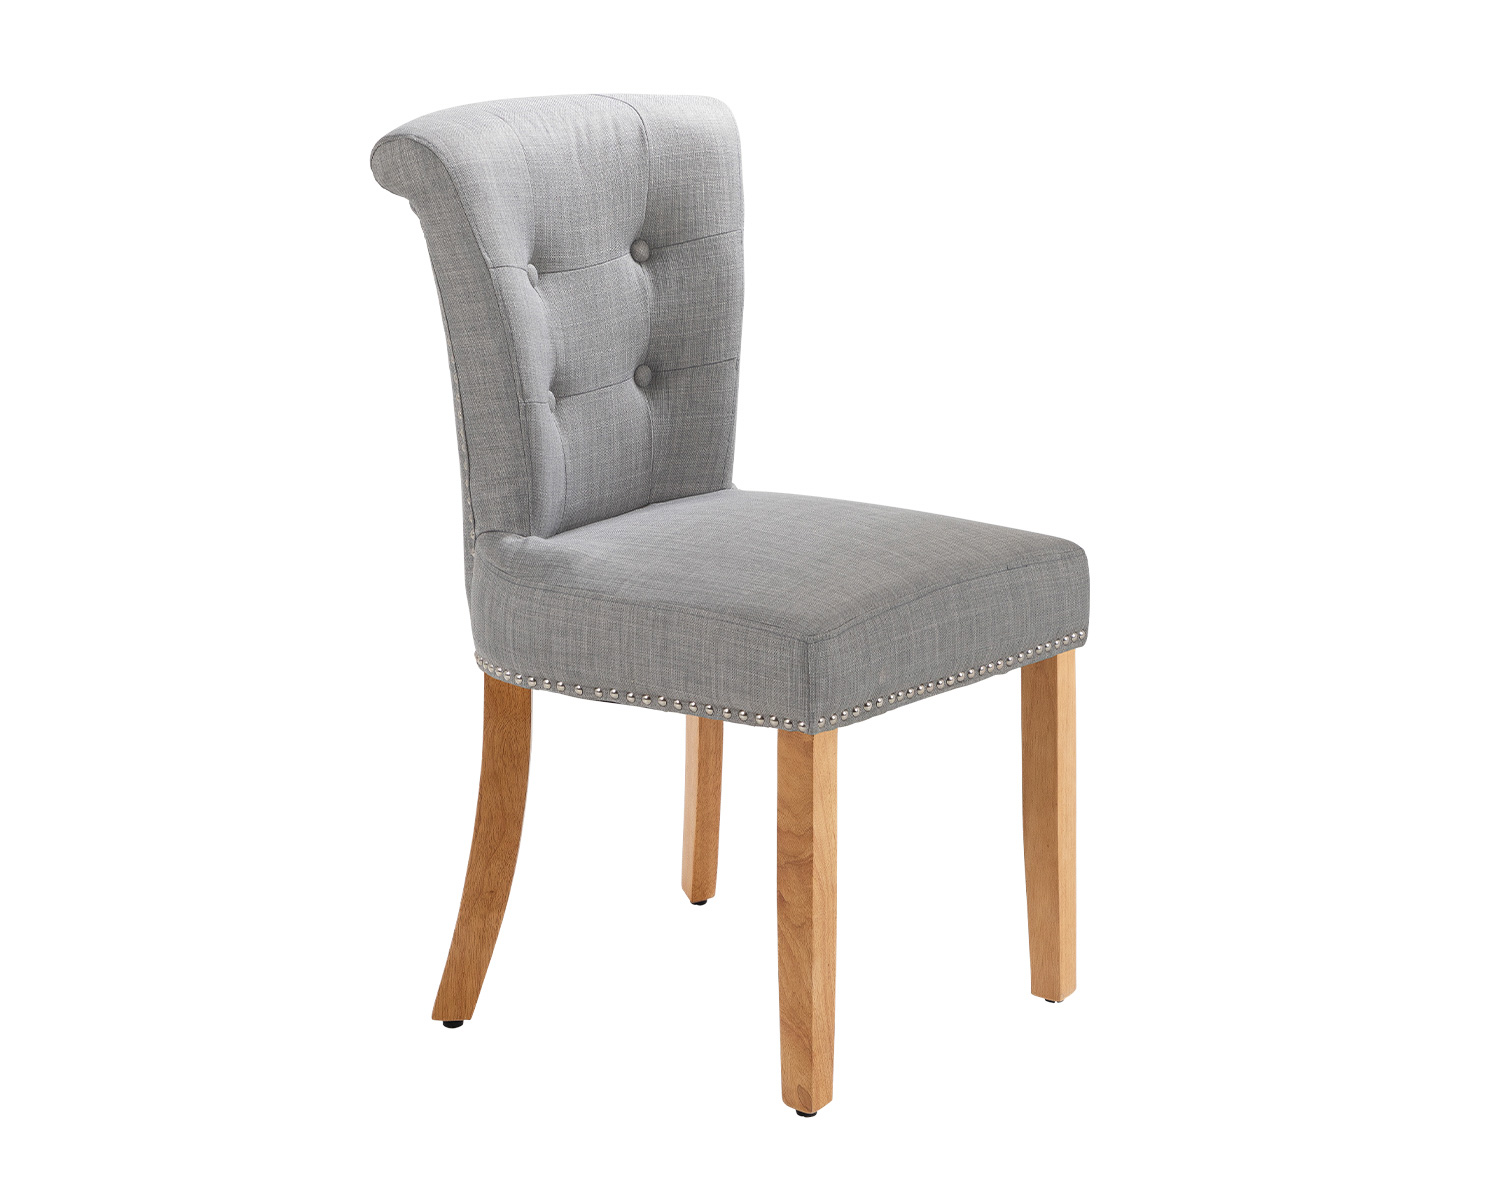 Camden Dining Chair In Grey Linen With Chrome Knocker And Oak Legs